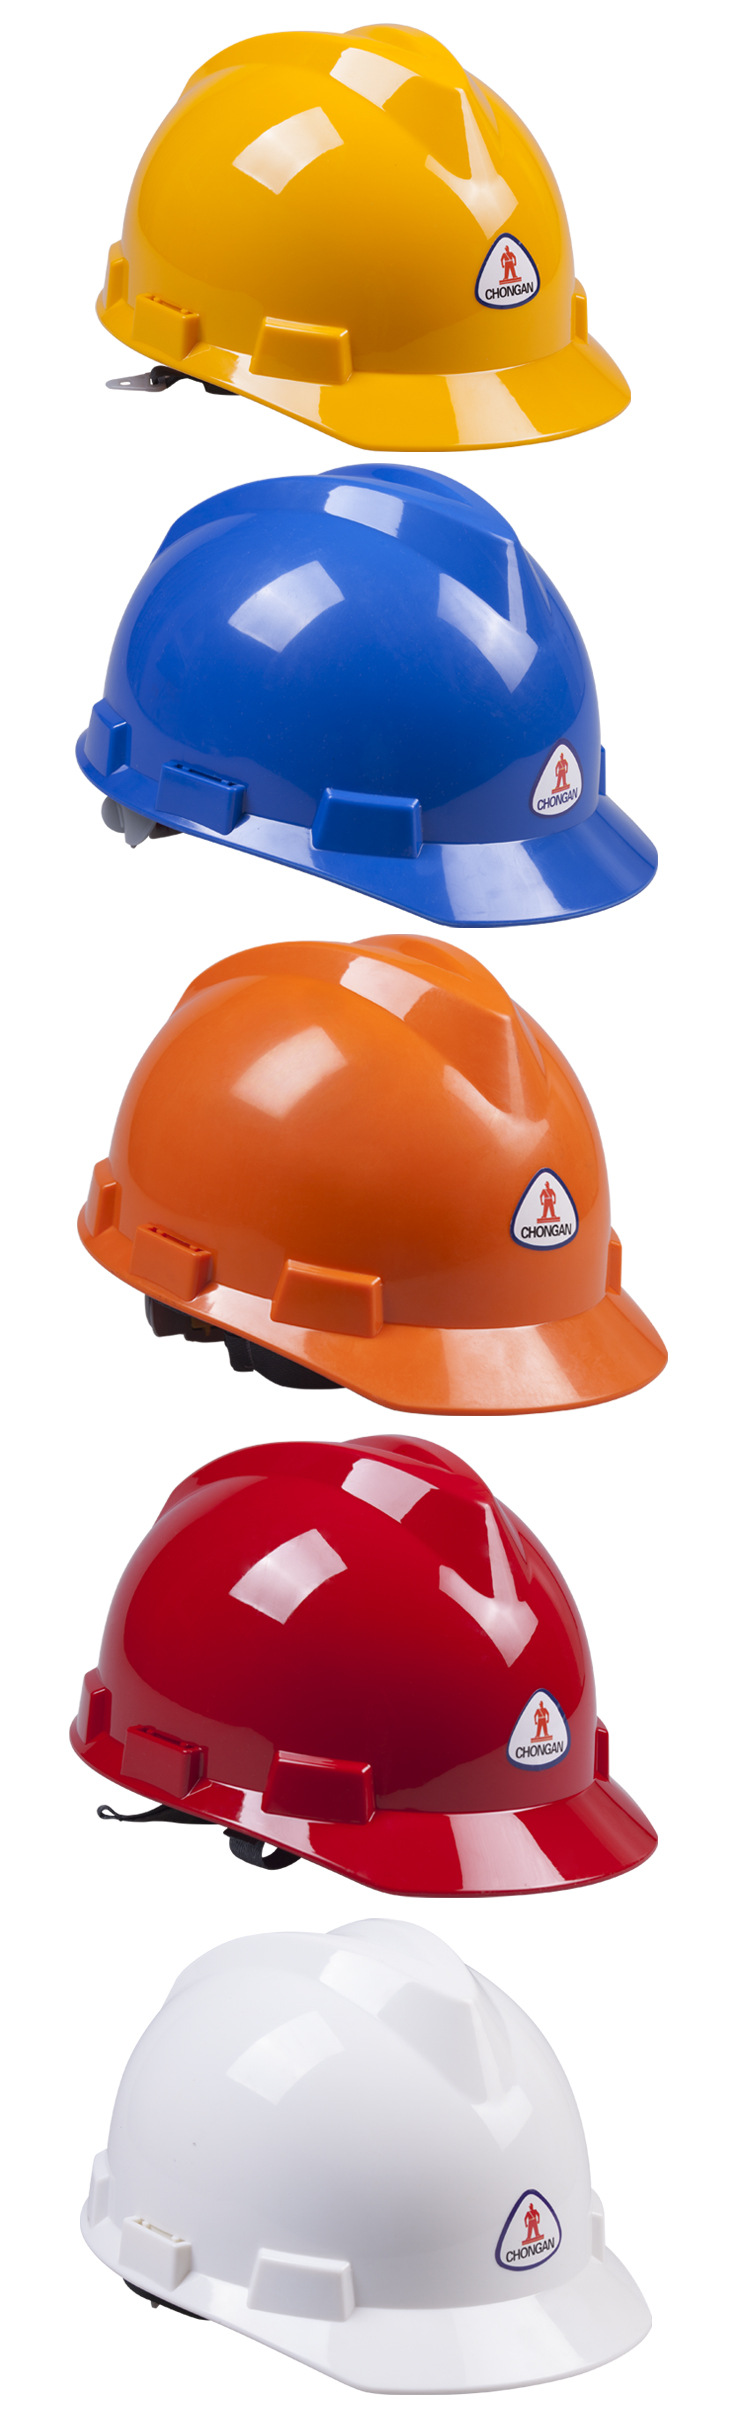 TZYA-59A High Quality Plastic All color ABS V-type Safety Helmet with Chin Strap